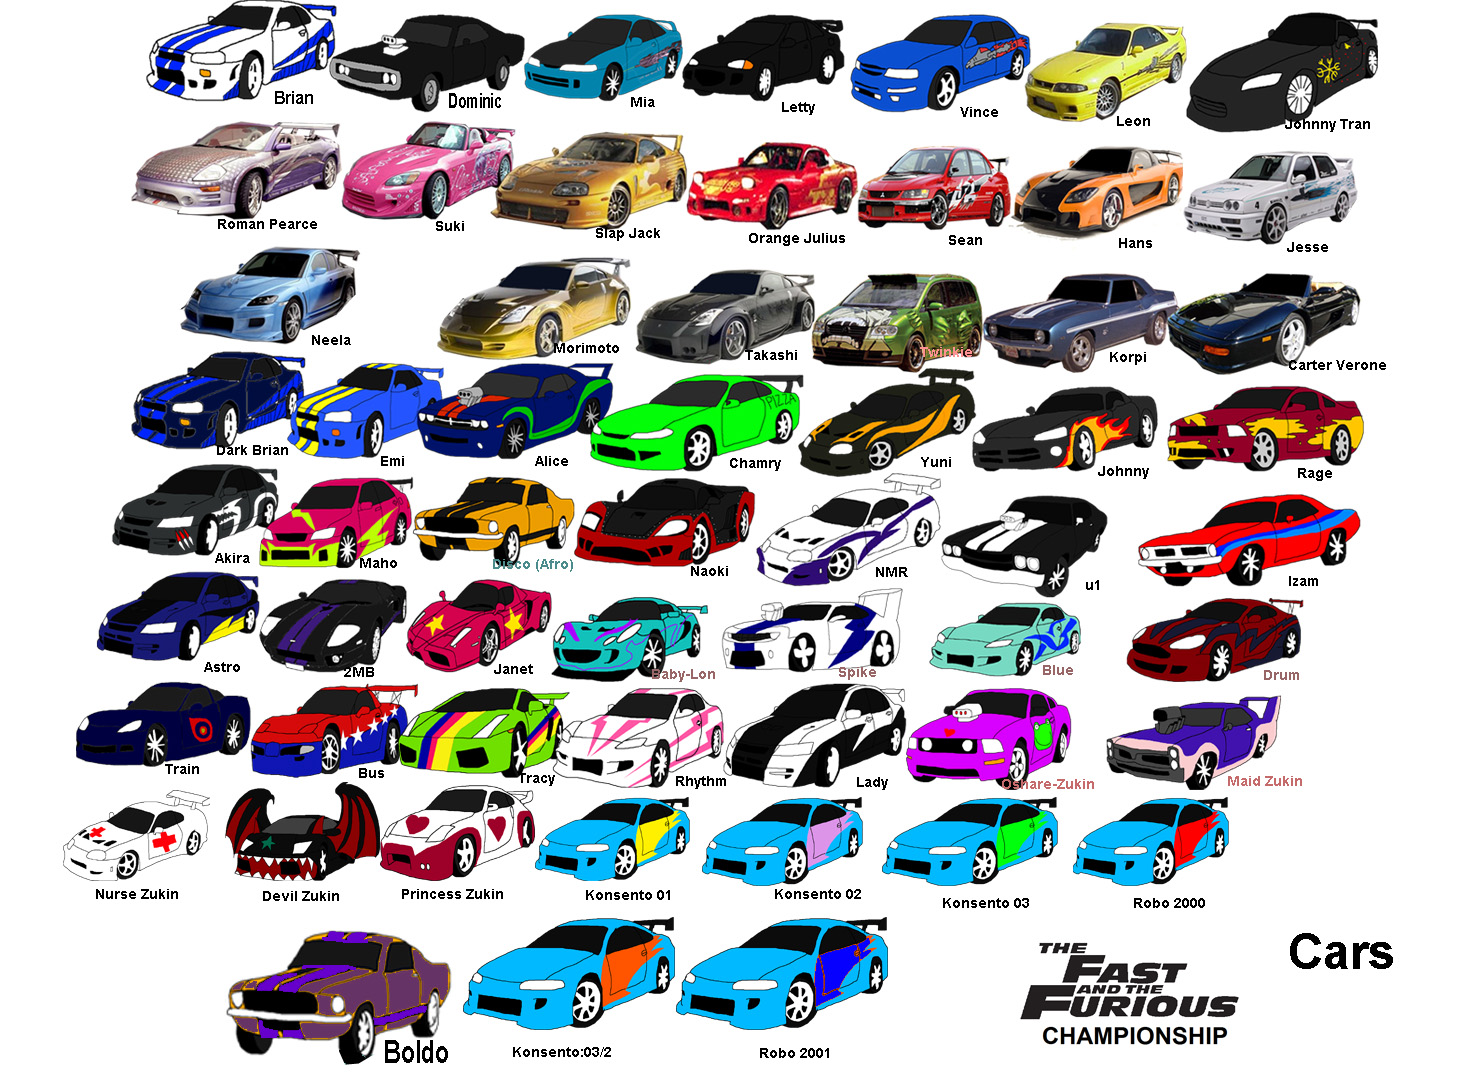 The Fast and the Furious Championship Cars by Rainbow-Dash-Rockz